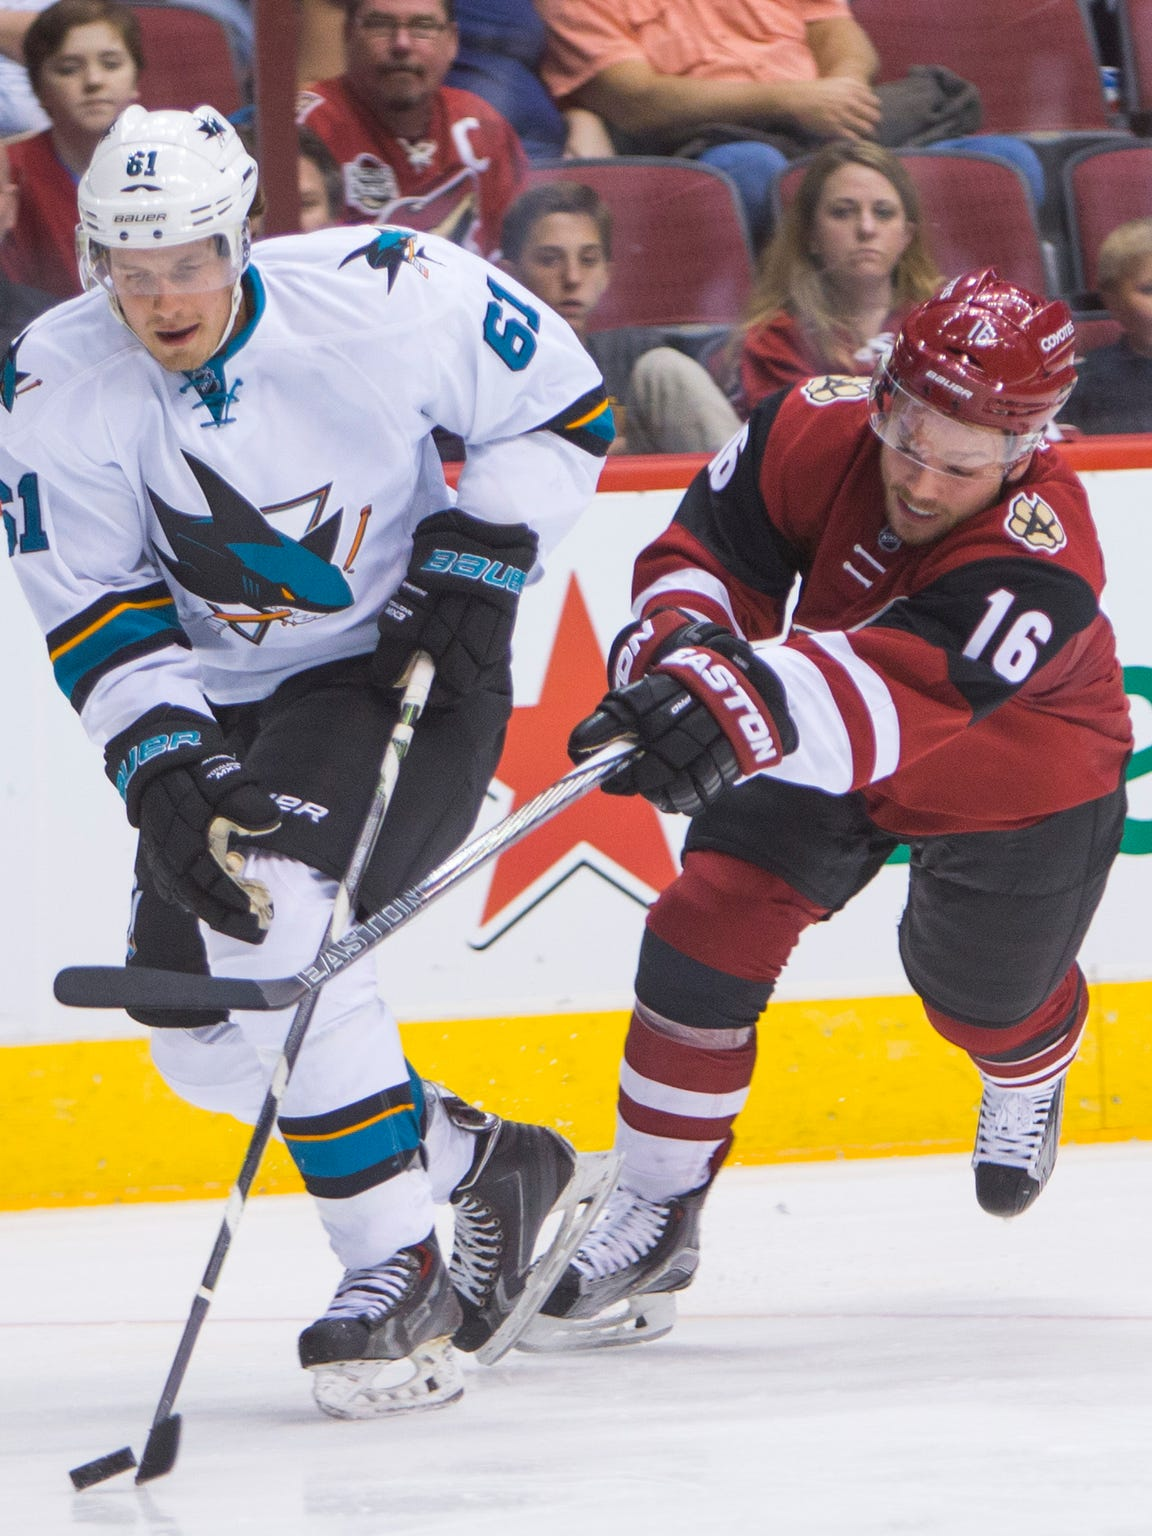 Coyotes rookie winger Max Domi (16) has started his career with four goals and six assists in his first 10 games.